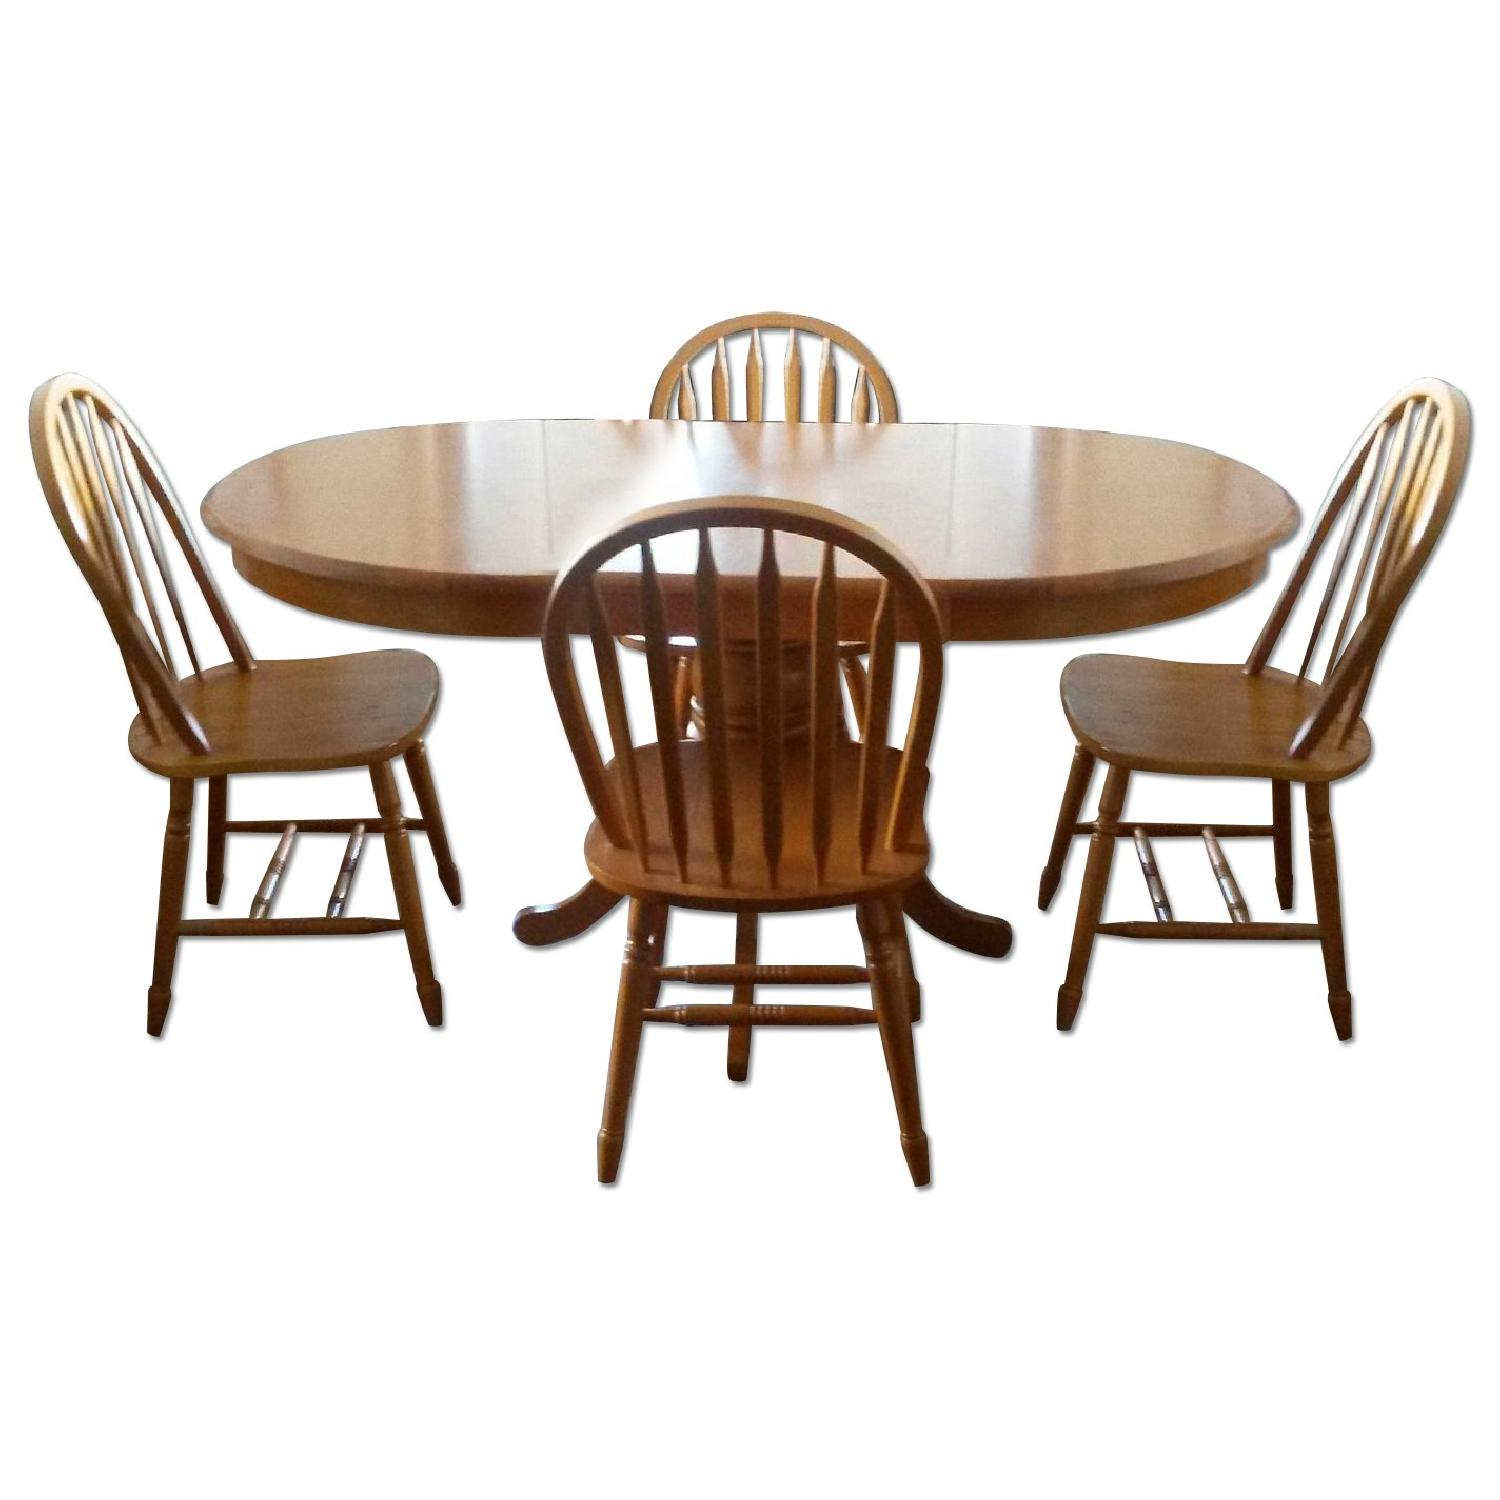 Pedestal Dining Table - image-0